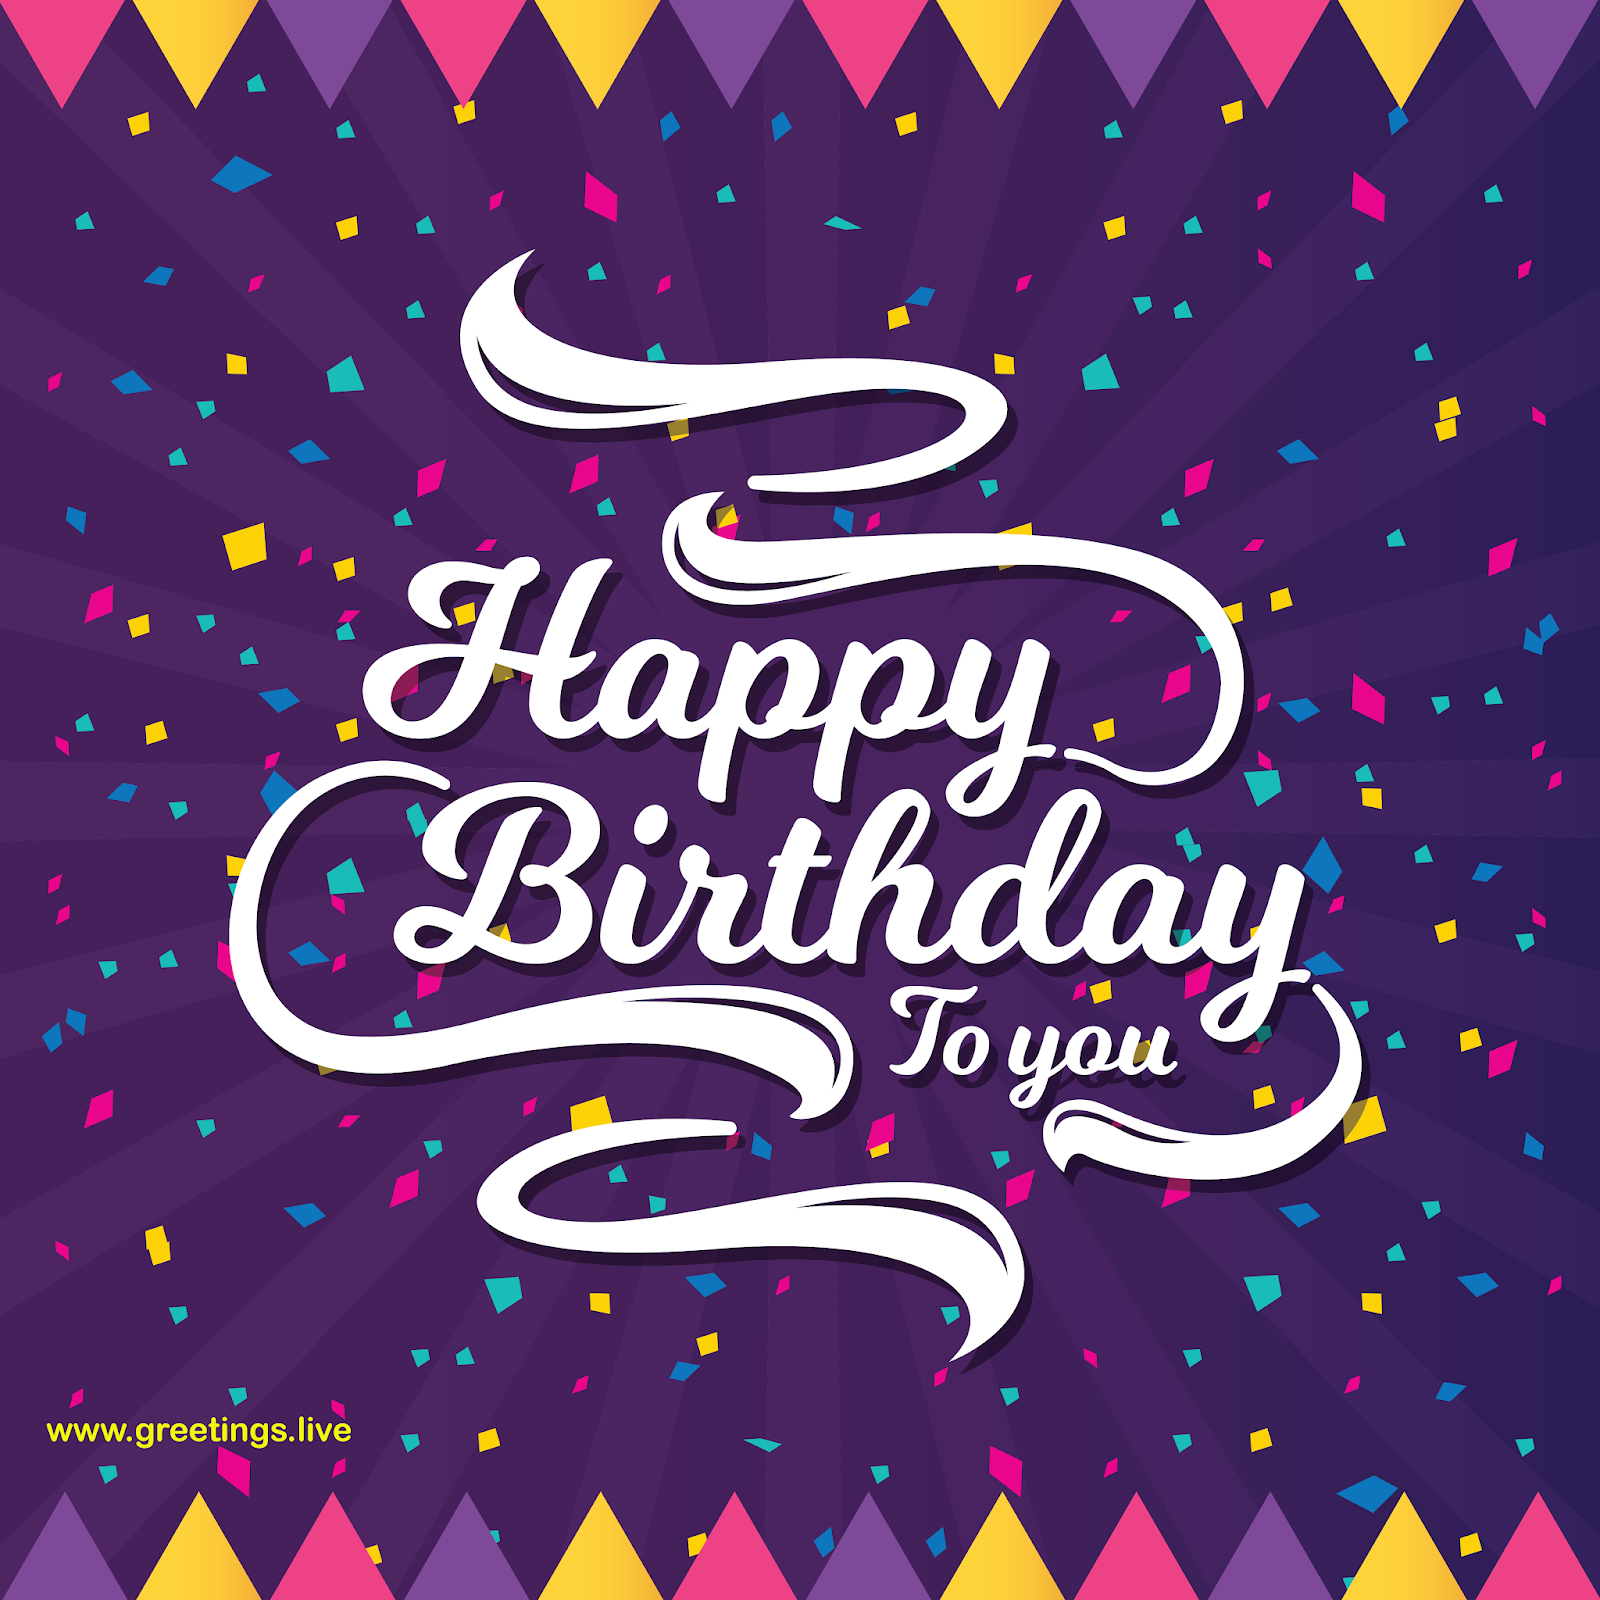 Greetings Live Free Daily Greetings Pictures Festival Gif Images Happy Birthday Wishes Pics Free Download